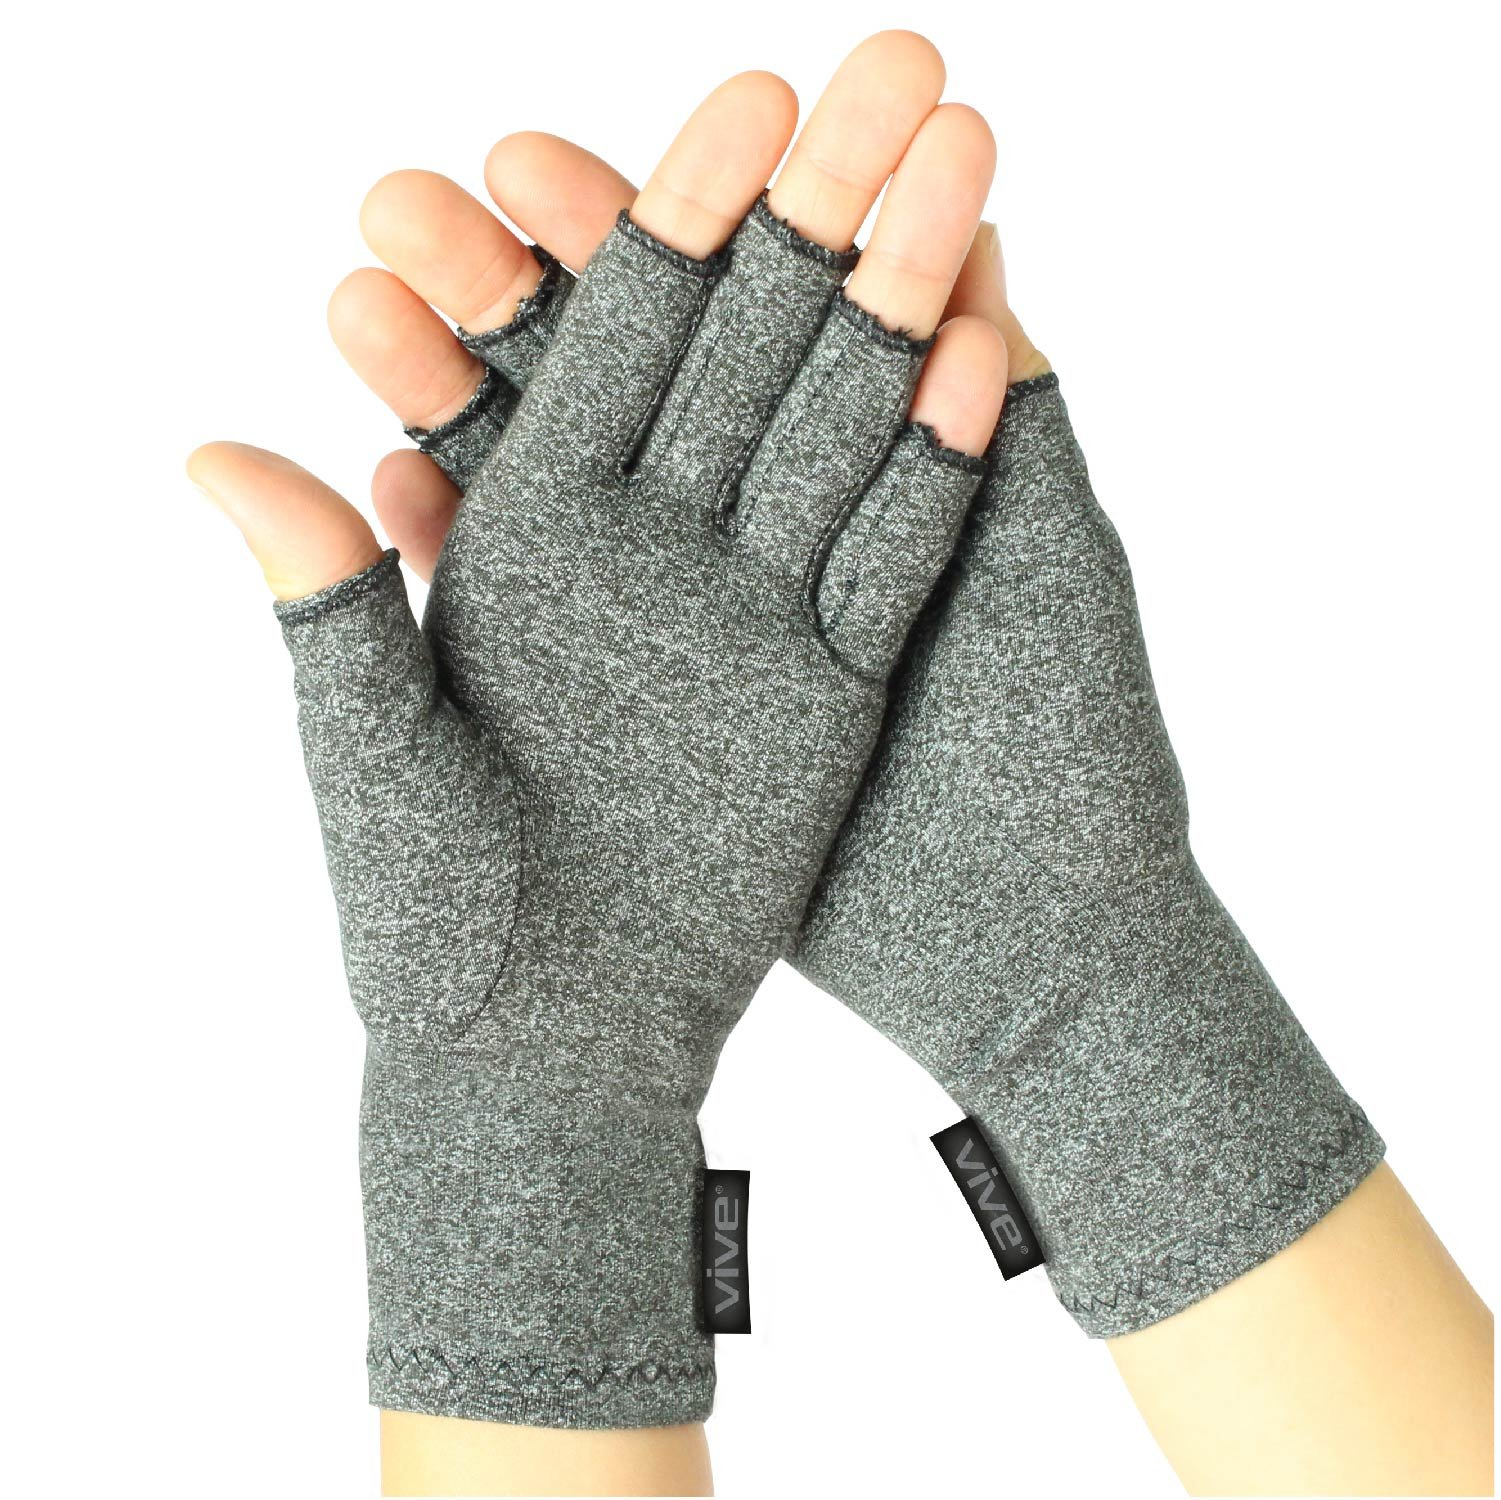 Arthritis Gloves by Vive - Compression Gloves for Rheumatoid & Osteoarthritis - Hand Gloves Provide Arthritic Joint Pain Symptom Relief - Men & Women - Open Finger (Large)